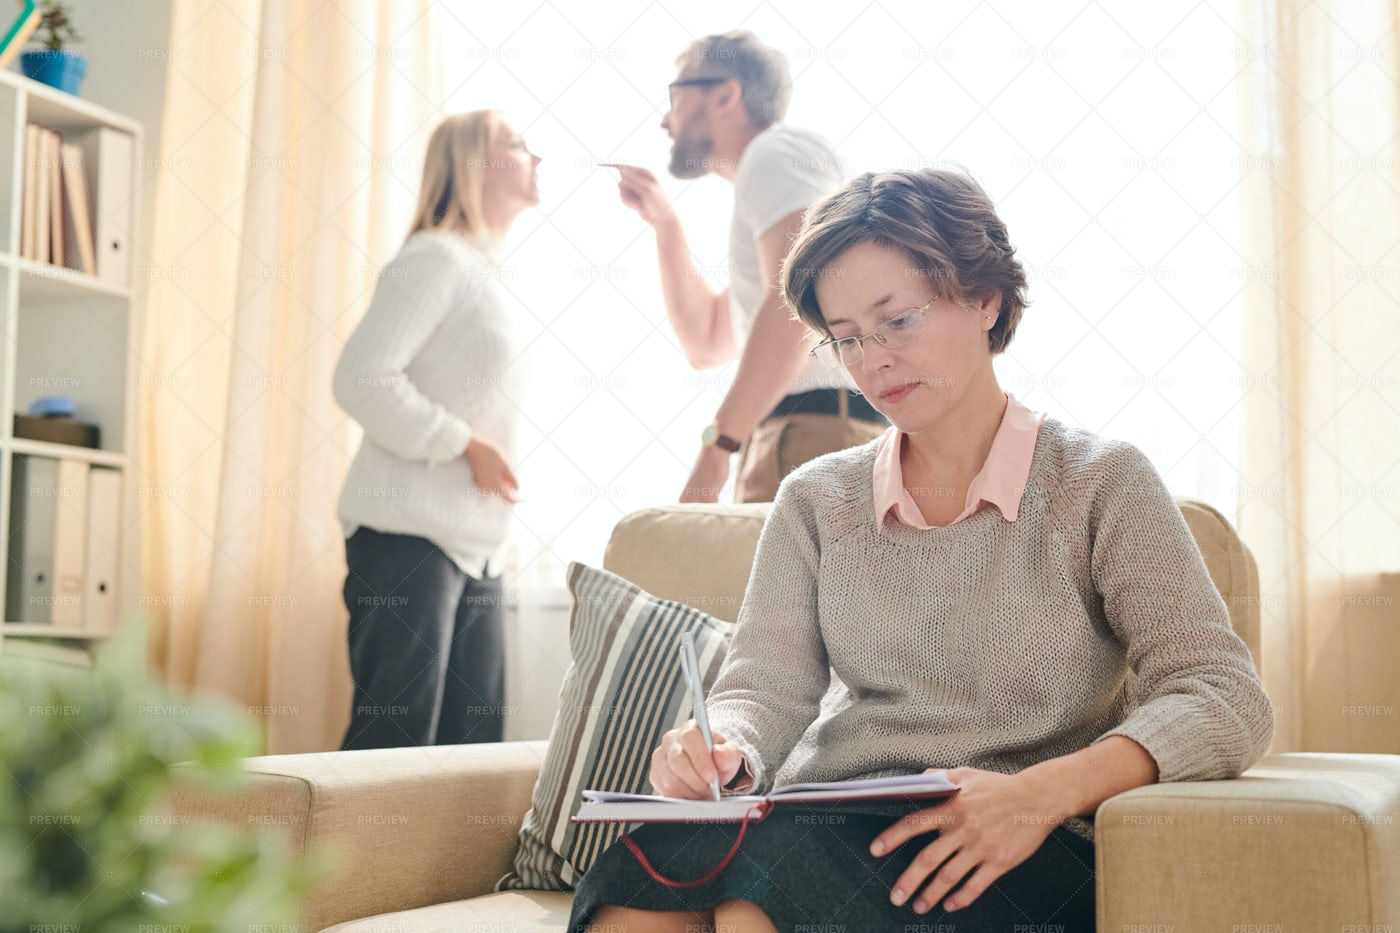 Psychologist Making Notes While...: Stock Photos